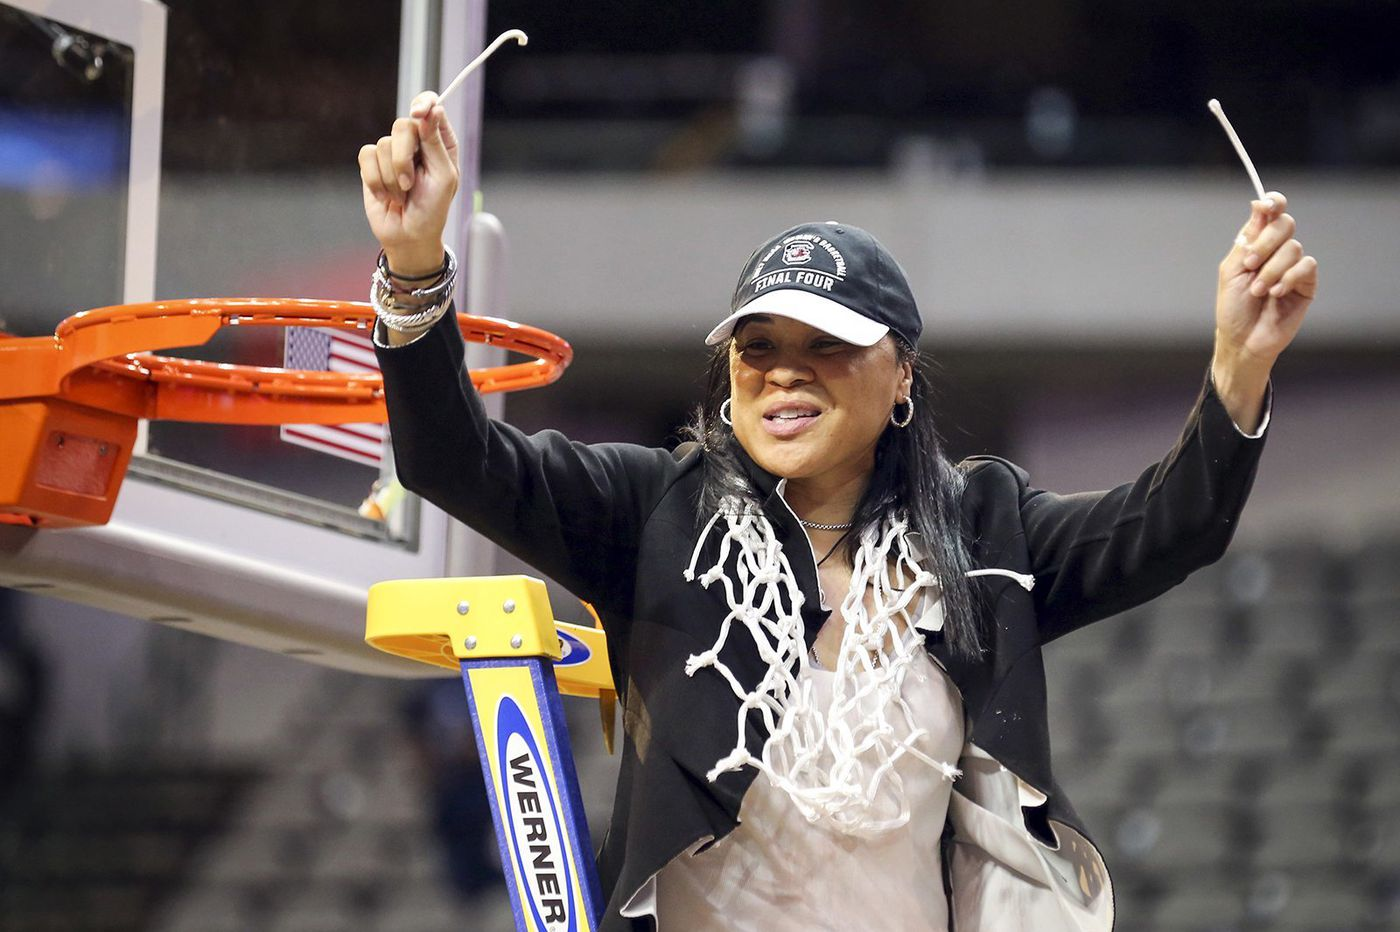 Dawn Staley featured in new Netflix docu-series, 'The Playbook'